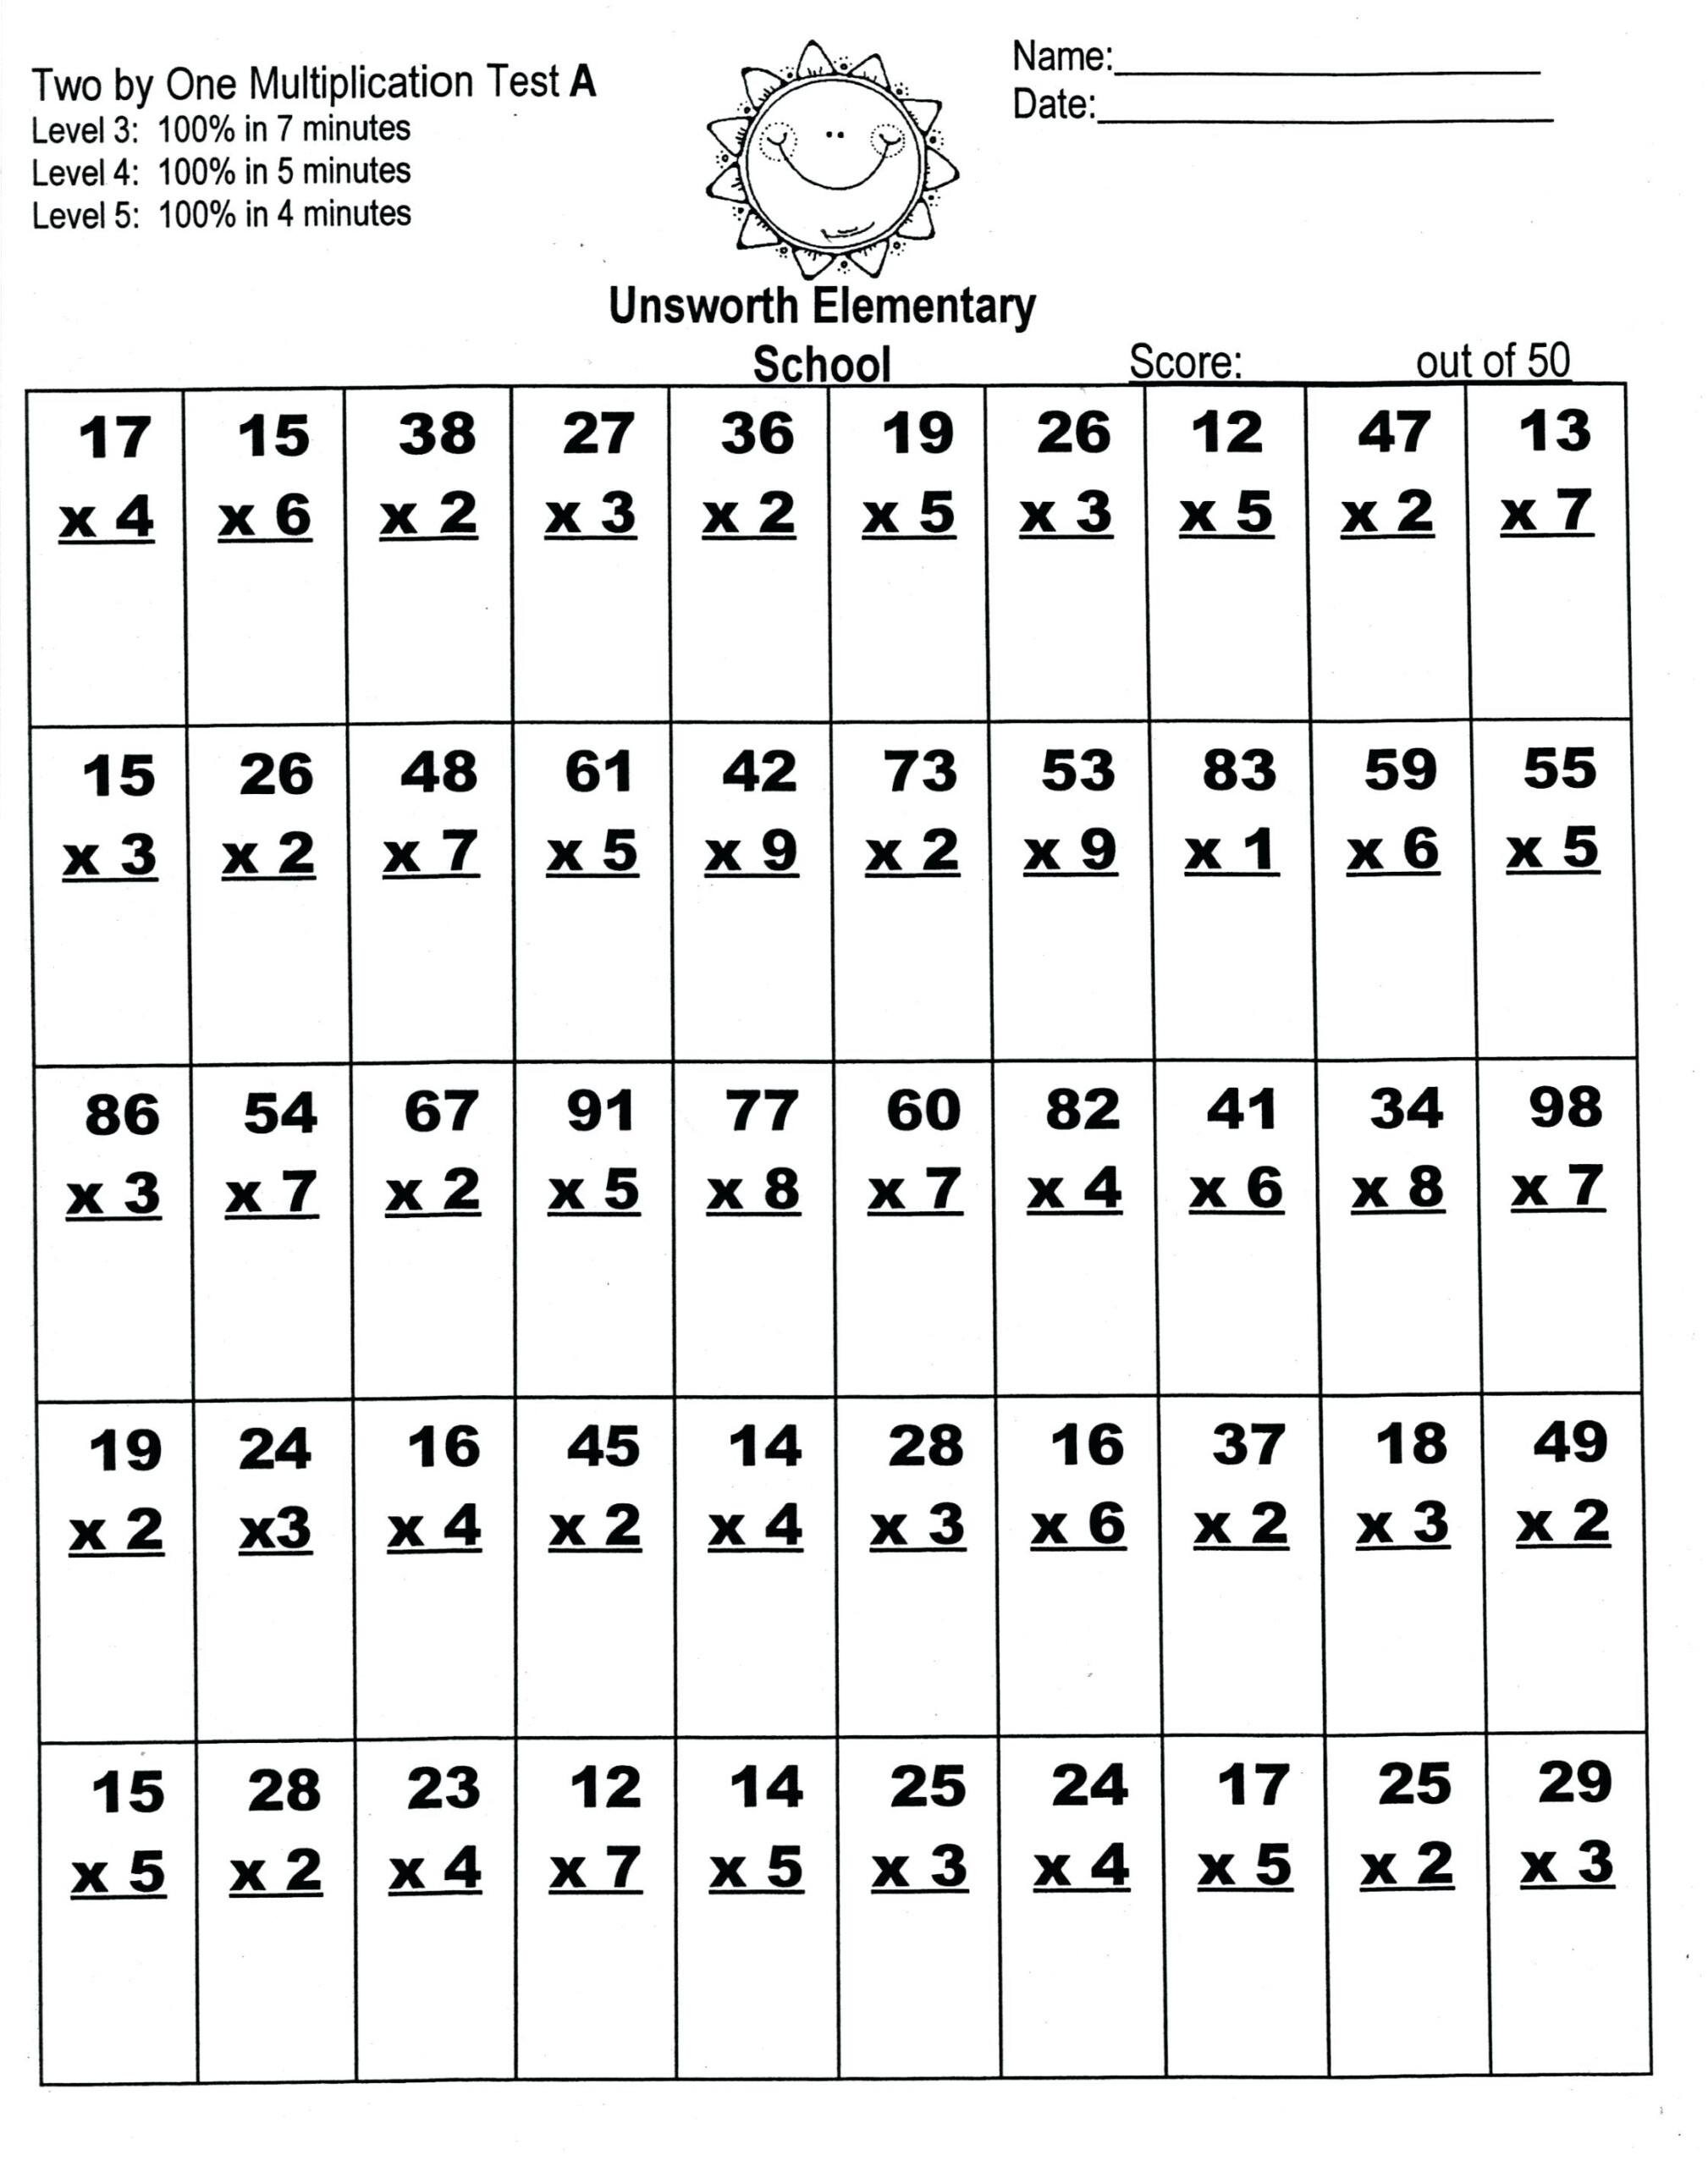 Kids Orksheets Year Free Printable Short Comprehension For within Multiplication Worksheets X3 And X4